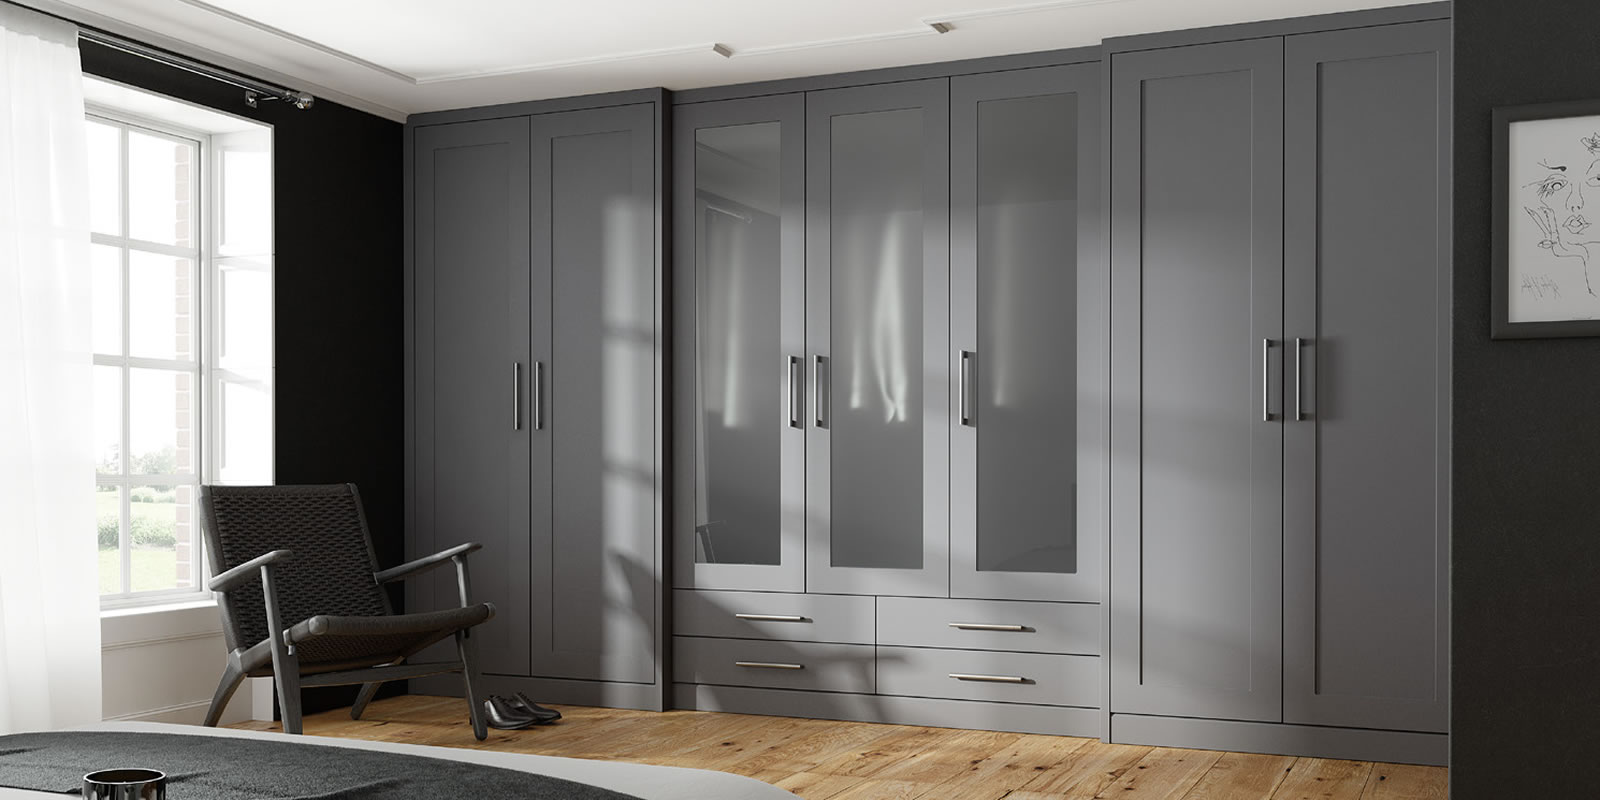 mya bedrooms and kitchens Wolverhampton shaker no grooves main slider background image